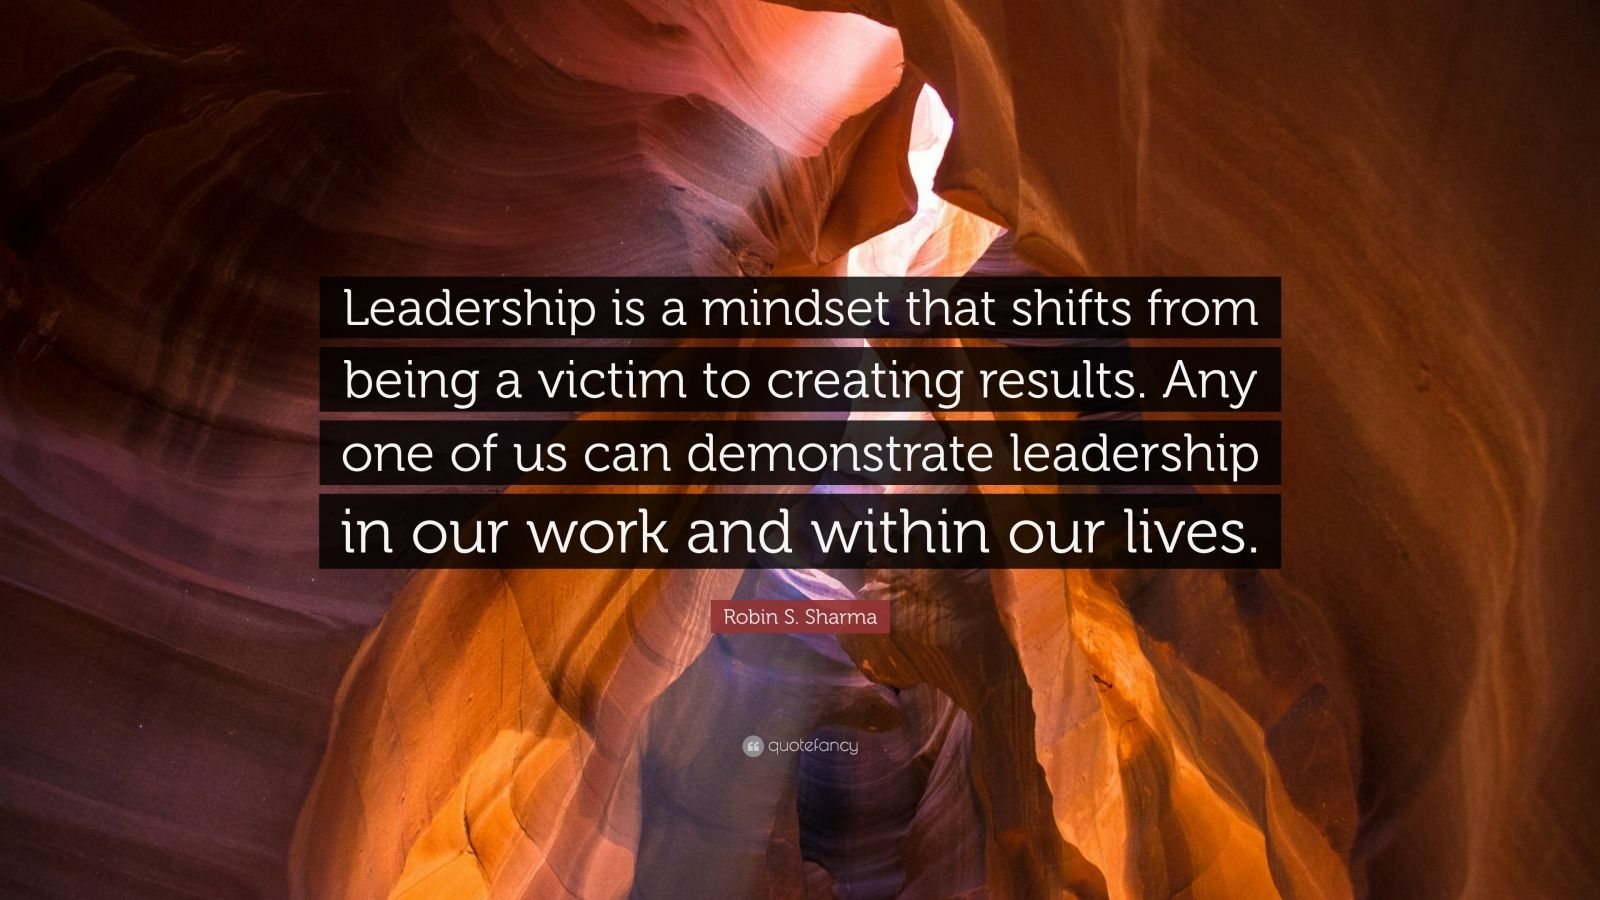 """Robin S. Sharma Quote: """"Leadership is a mindset that shifts from being a victim to creating results. Any one of us can demonstrate leadership in our work and within our lives."""""""